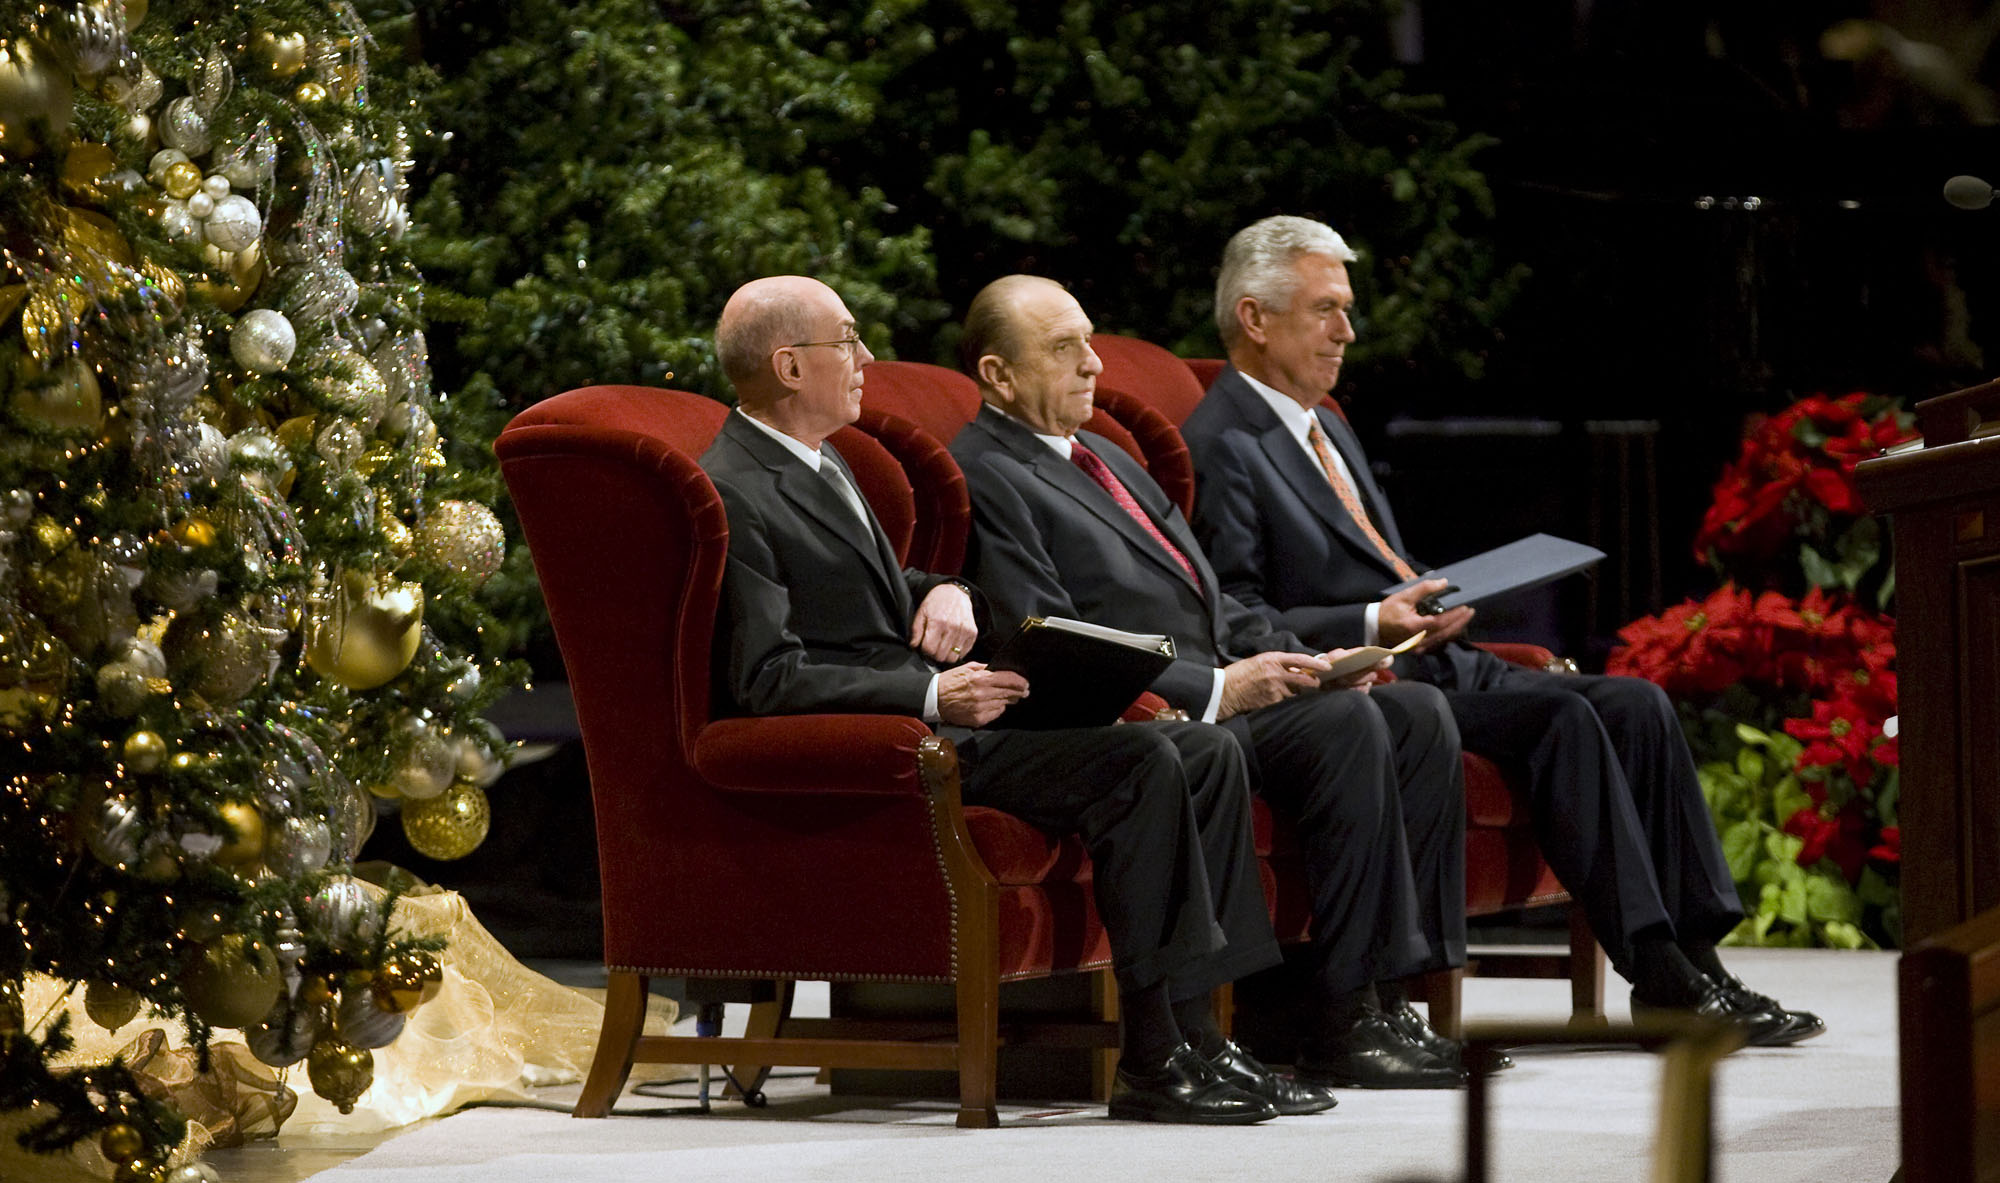 (Al Hartmann  |  The Salt Lake Tribune ) President Thomas S. Monson (center), with Henry B. Eyring (left) and Dieter F. Uchtdorf (right), at the Conference Center for the annual Christmas Devotional on Dec. 6, 2009.